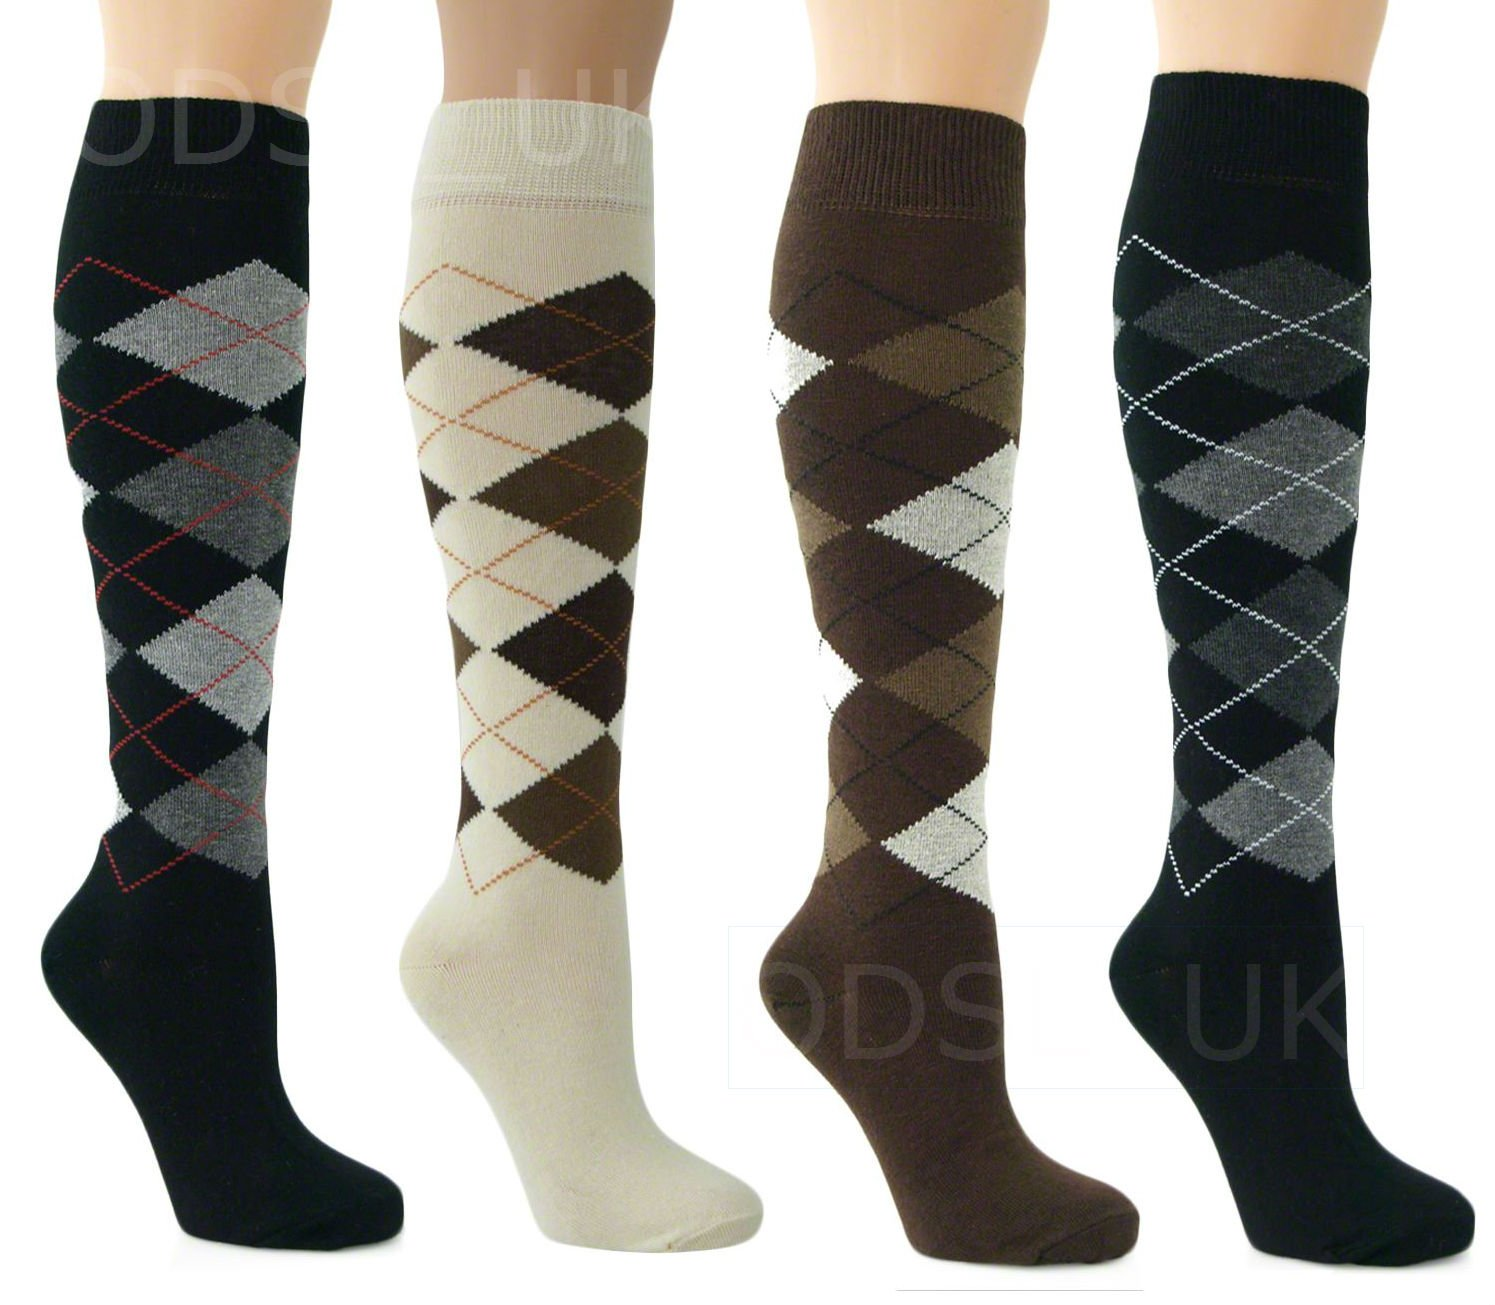 6 PAIR MENS LONG HOSE COTTON RICH ARGYLE GOLFING SPORT KNEE HIGH SOCKS UK 6-11 FRESH FEEL